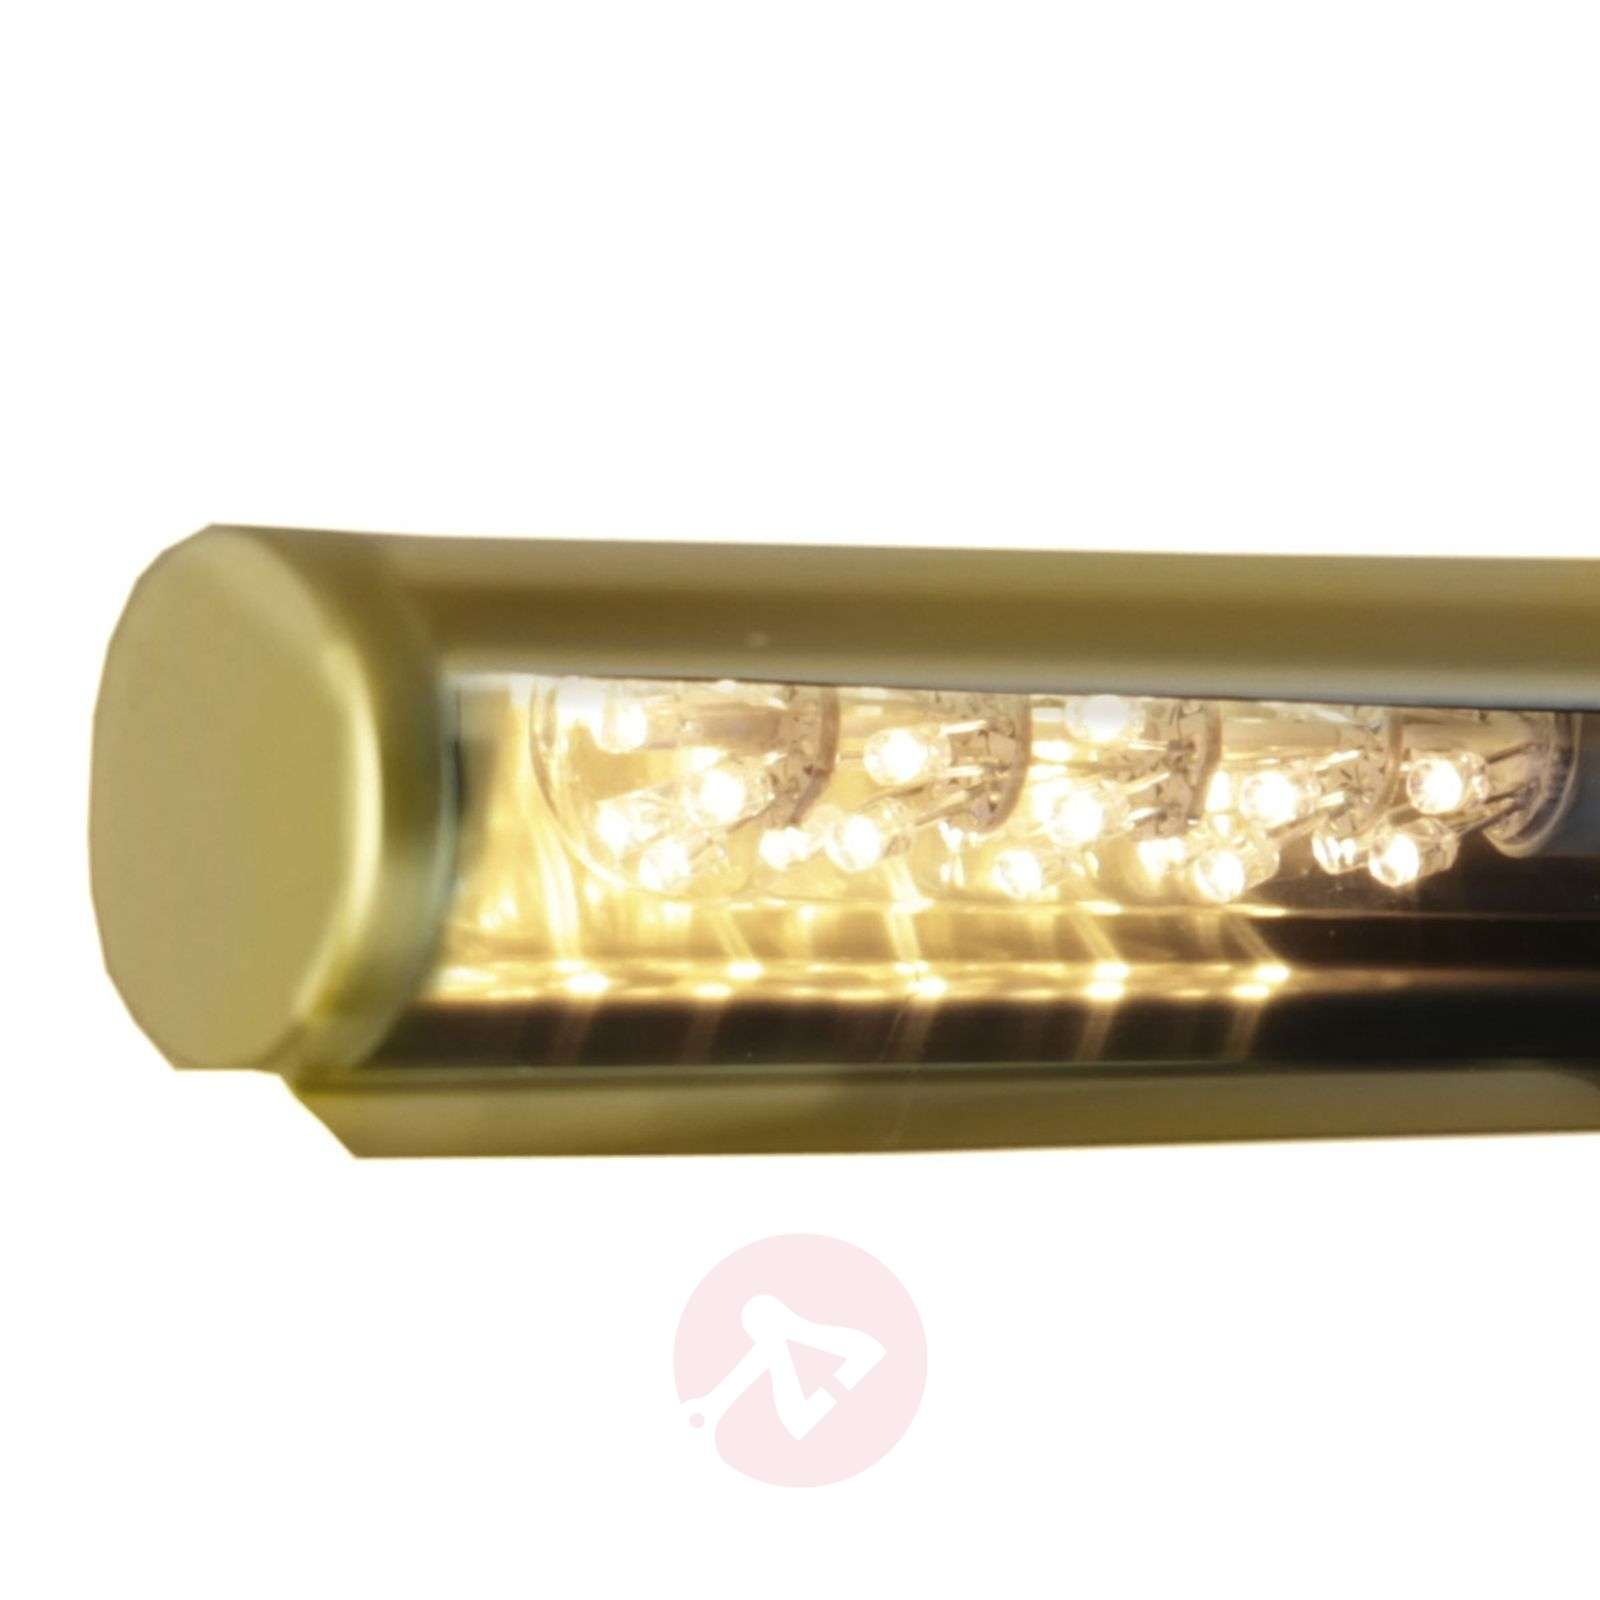 E14 1.5 W LED tube lamp clear, warm white 2100 K-1522282-01